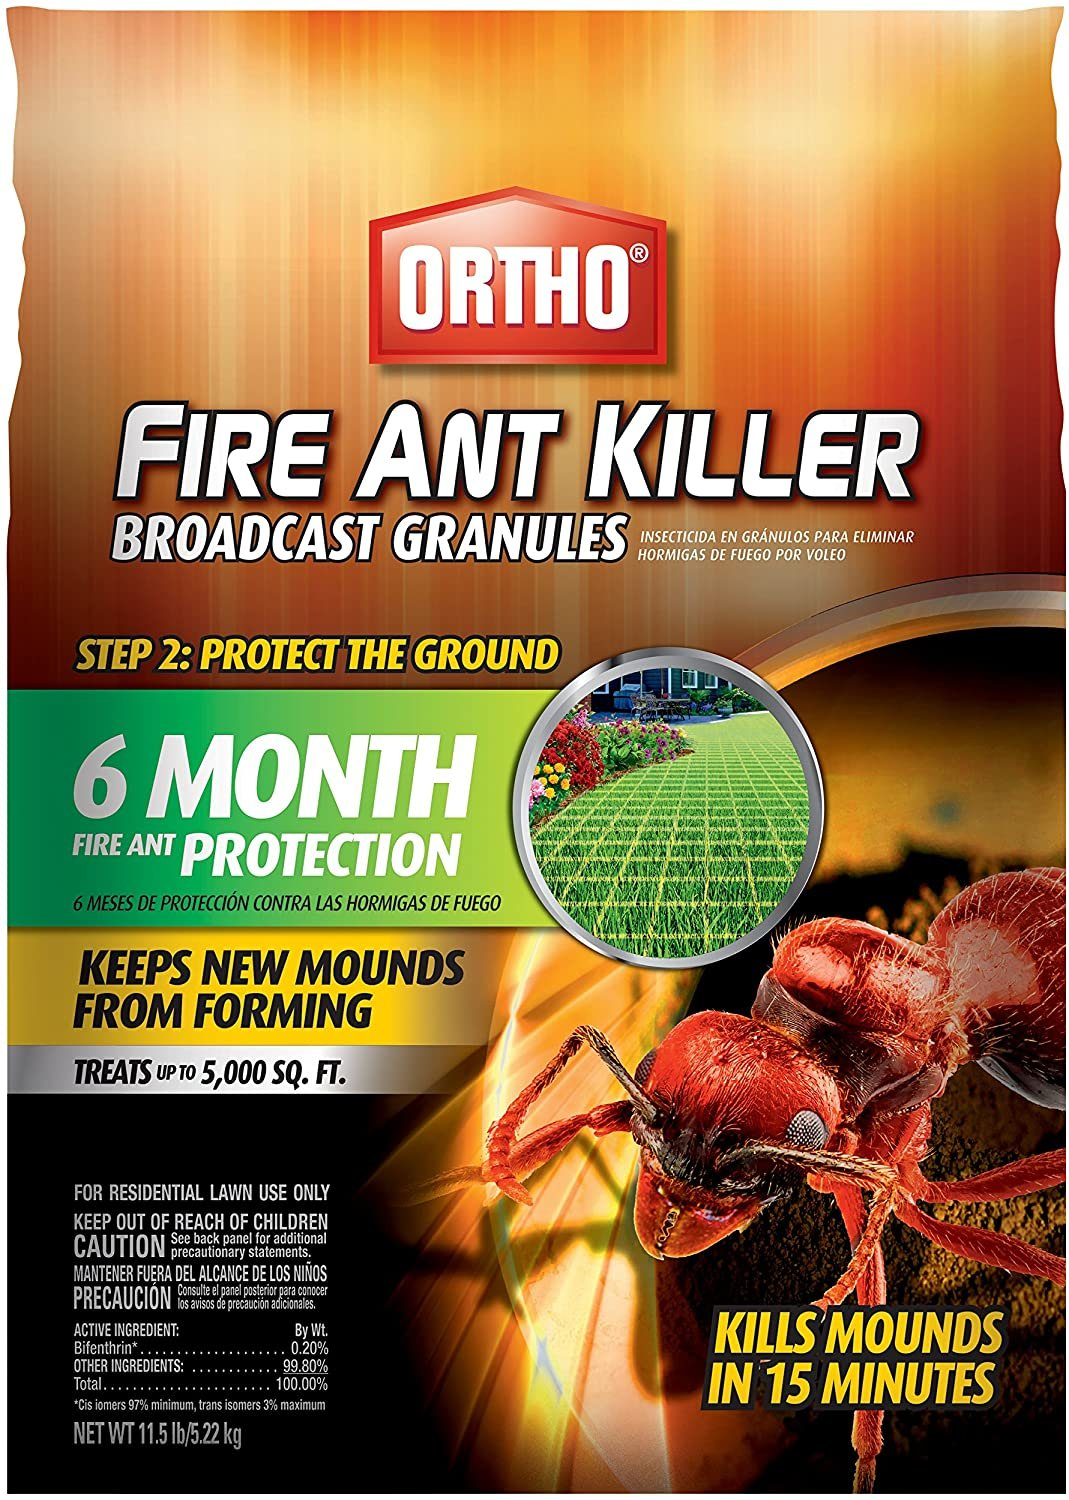 Ortho Fire Ant Killer Broadcast Granules: Treats up to 5,000 sq. ft, Prevent New